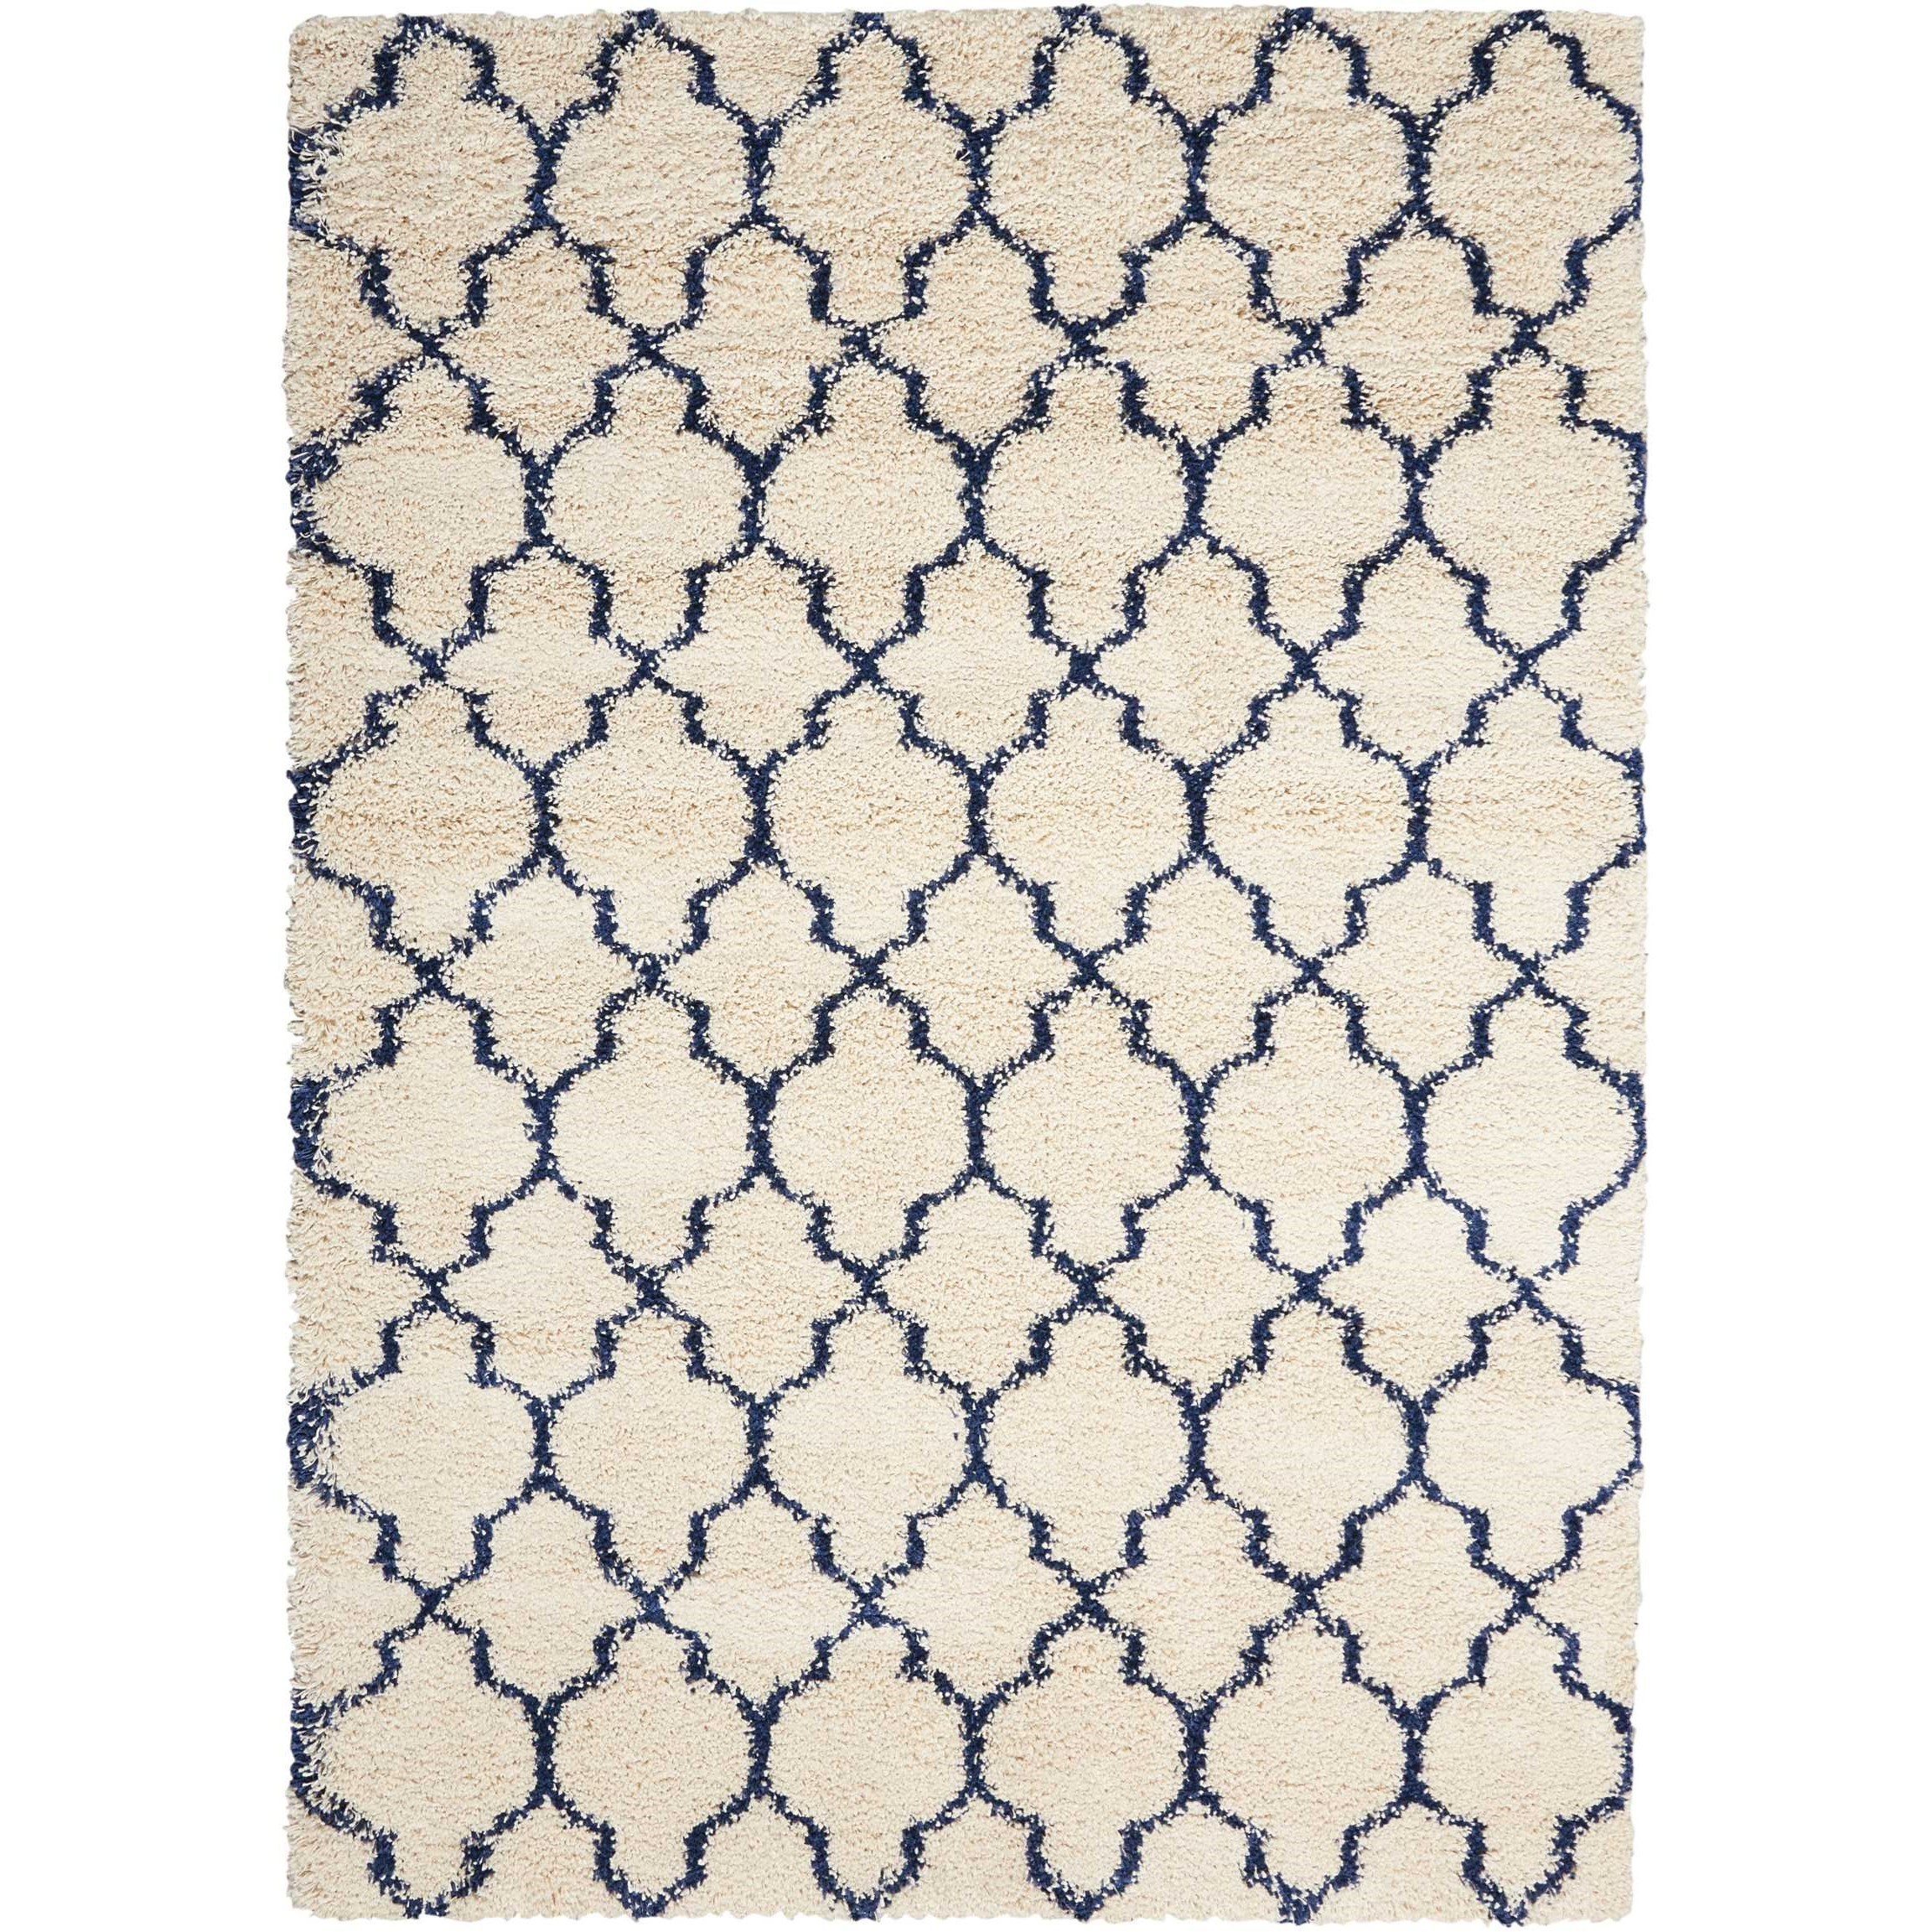 """Amore 3'11"""" x 5'11"""" Ivory/Blue Rectangle Rug by Nourison at Home Collections Furniture"""